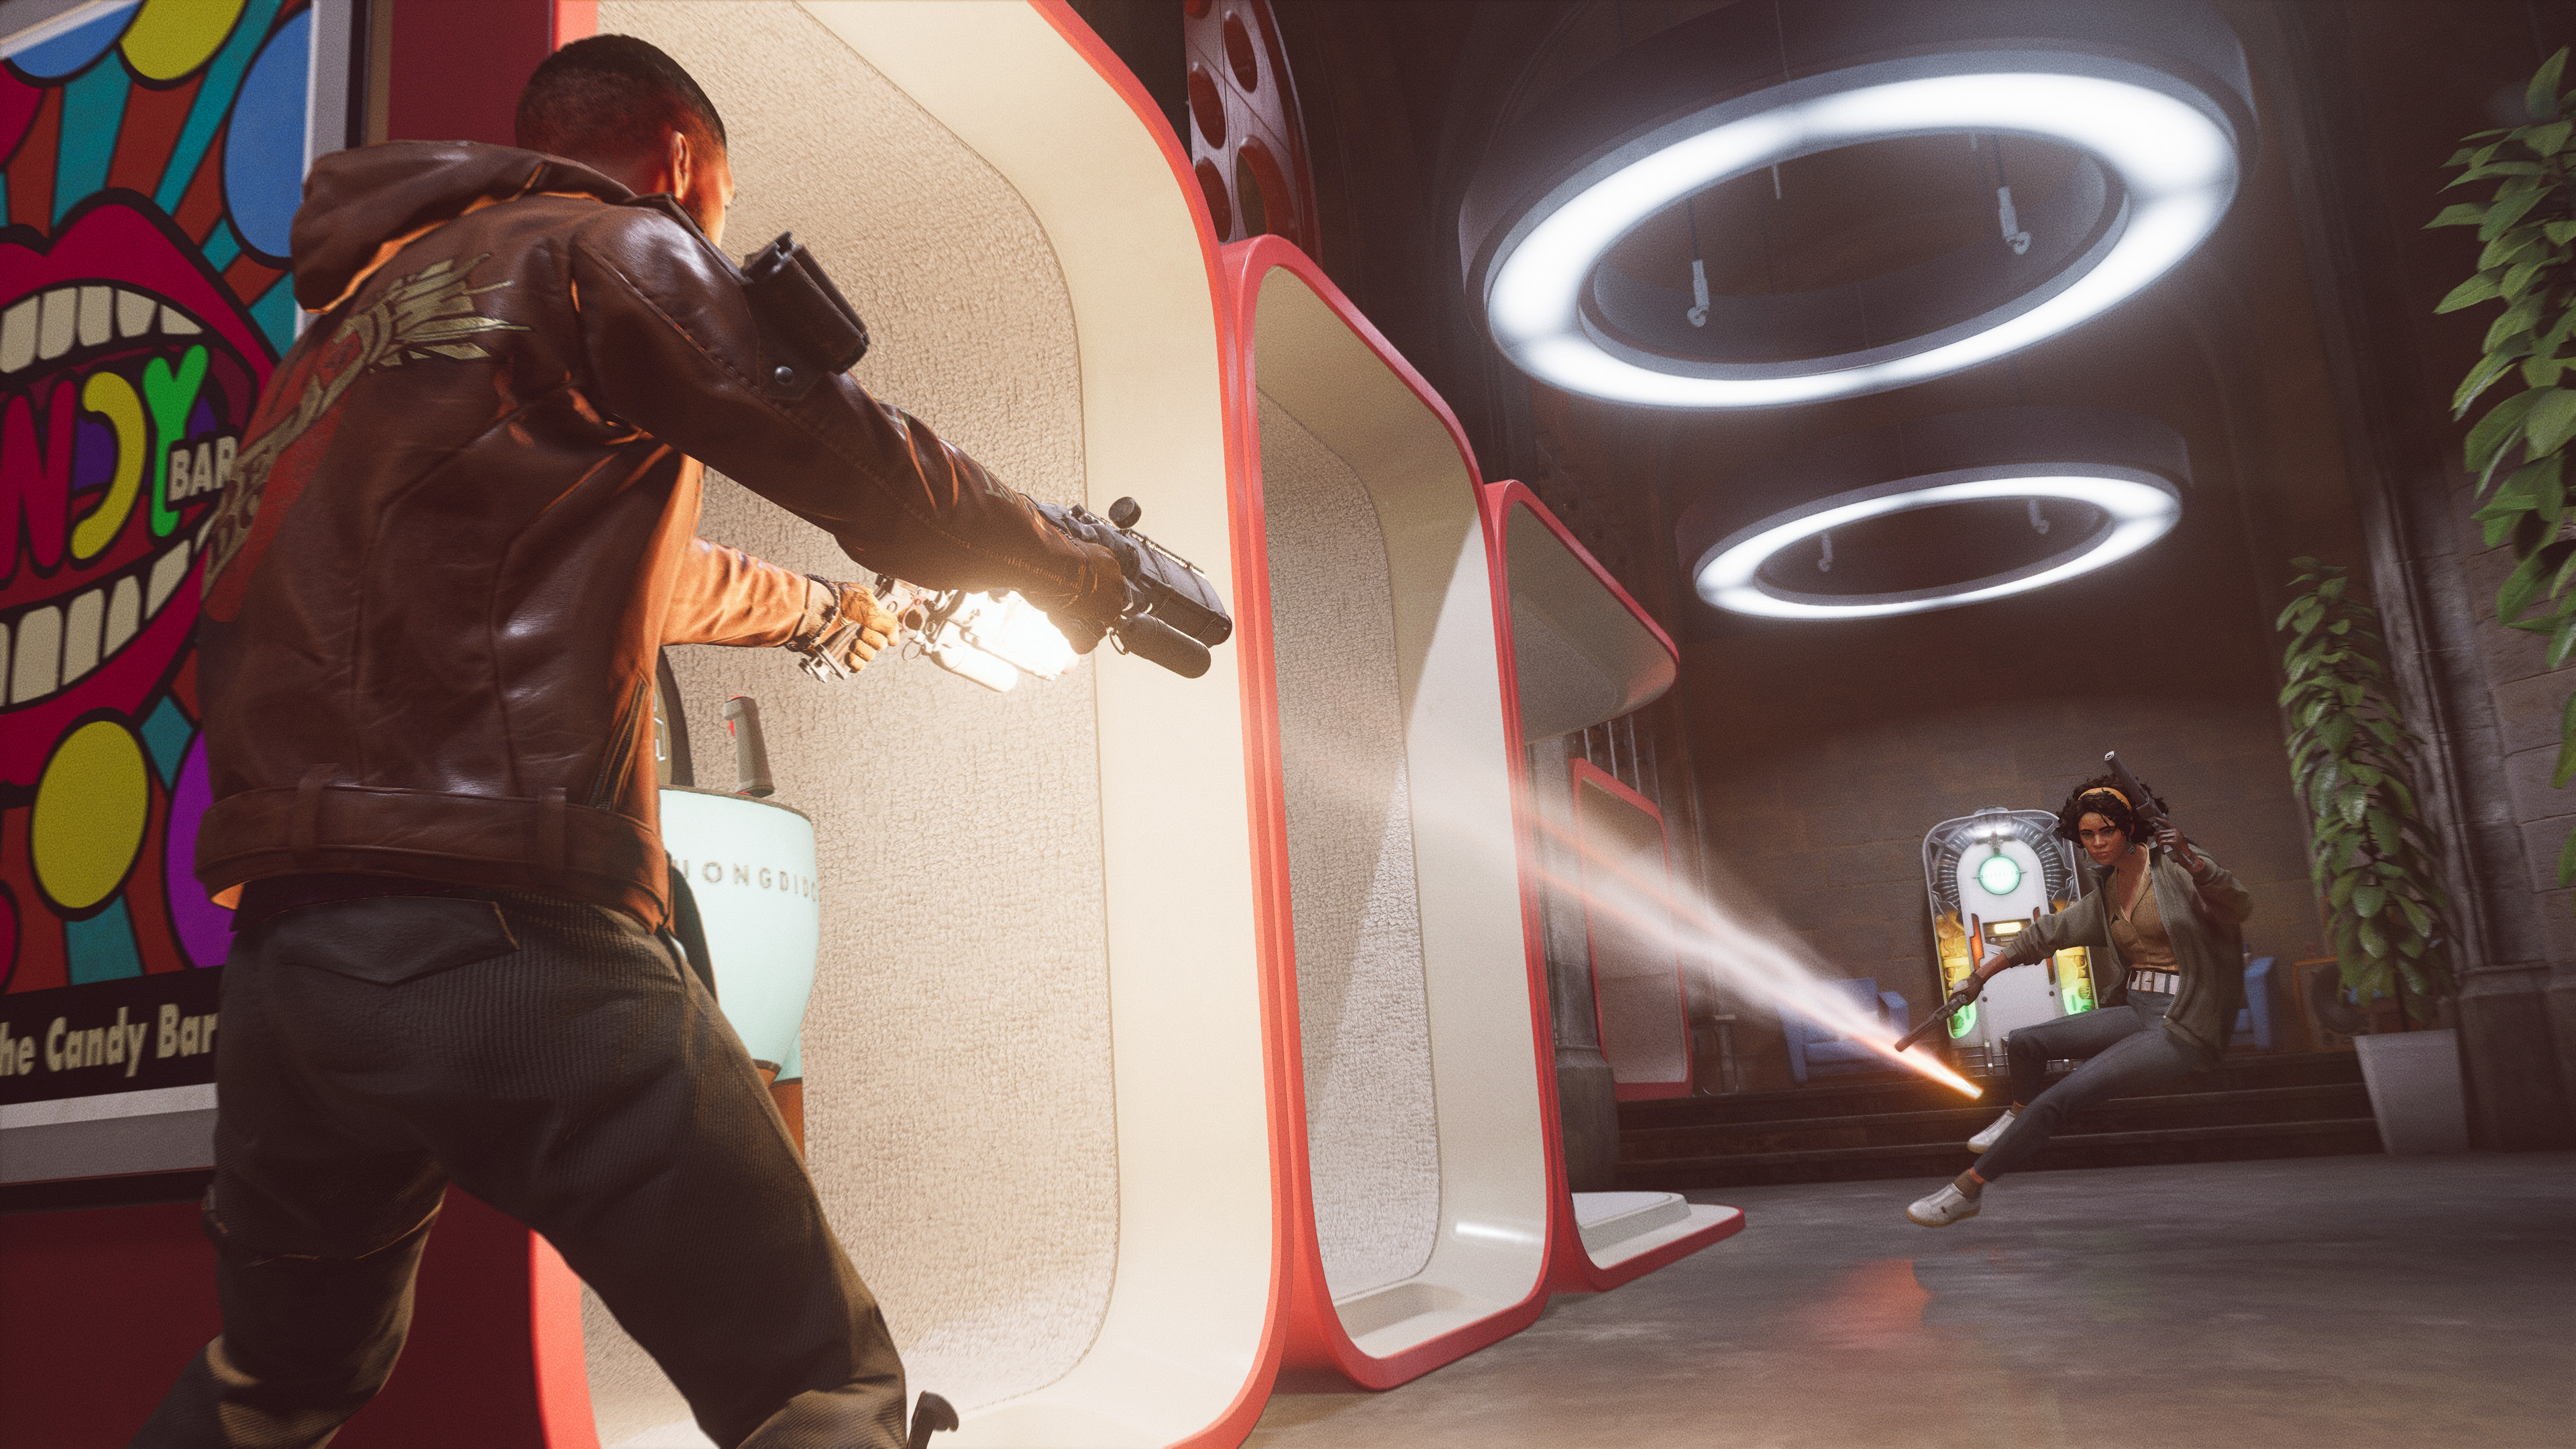 A character shoots down a hallway at another character as she jumps out of the way